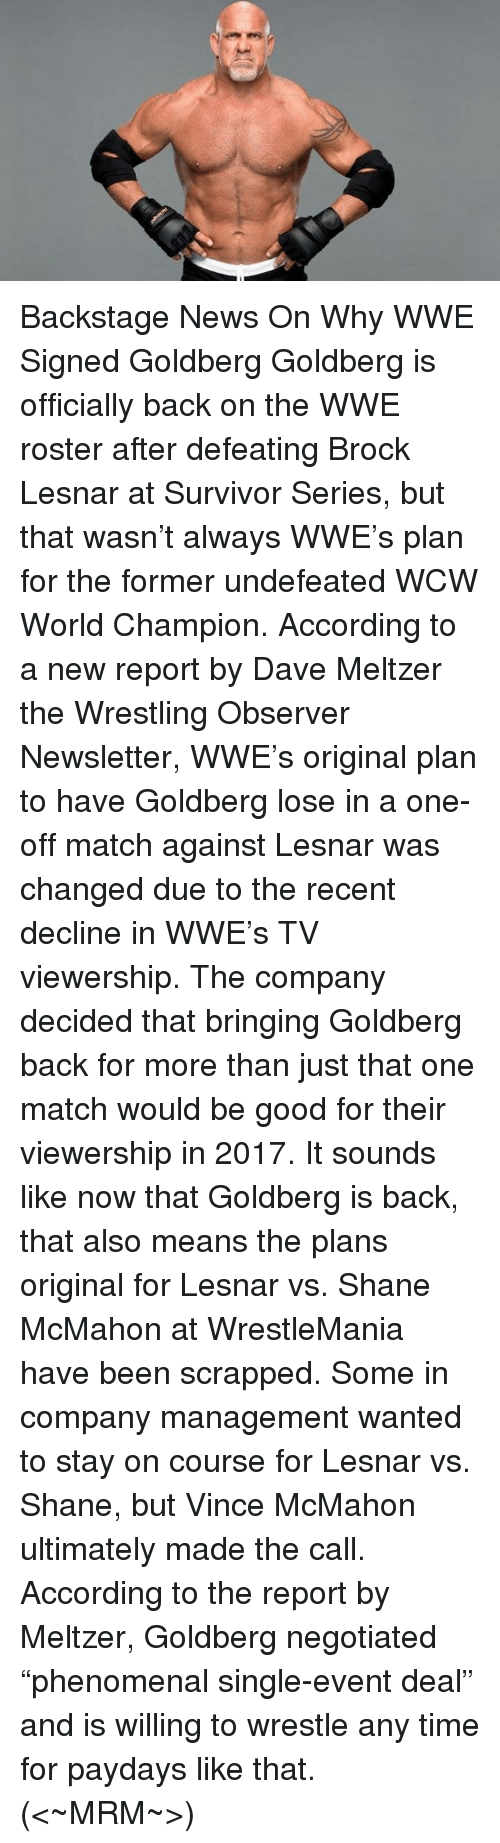 "Memes, Phenomenal, and Shane McMahon: Backstage News On Why WWE Signed Goldberg  Goldberg is officially back on the WWE roster after defeating Brock Lesnar at Survivor Series, but that wasn't always WWE's plan for the former undefeated WCW World Champion.  According to a new report by Dave Meltzer the Wrestling Observer Newsletter, WWE's original plan to have Goldberg lose in a one-off match against Lesnar was changed due to the recent decline in WWE's TV viewership. The company decided that bringing Goldberg back for more than just that one match would be good for their viewership in 2017.  It sounds like now that Goldberg is back, that also means the plans original for Lesnar vs. Shane McMahon at WrestleMania have been scrapped. Some in company management wanted to stay on course for Lesnar vs. Shane, but Vince McMahon ultimately made the call.  According to the report by Meltzer, Goldberg negotiated ""phenomenal single-event deal"" and is willing to wrestle any time for paydays like that.  (<~MRM~>)"